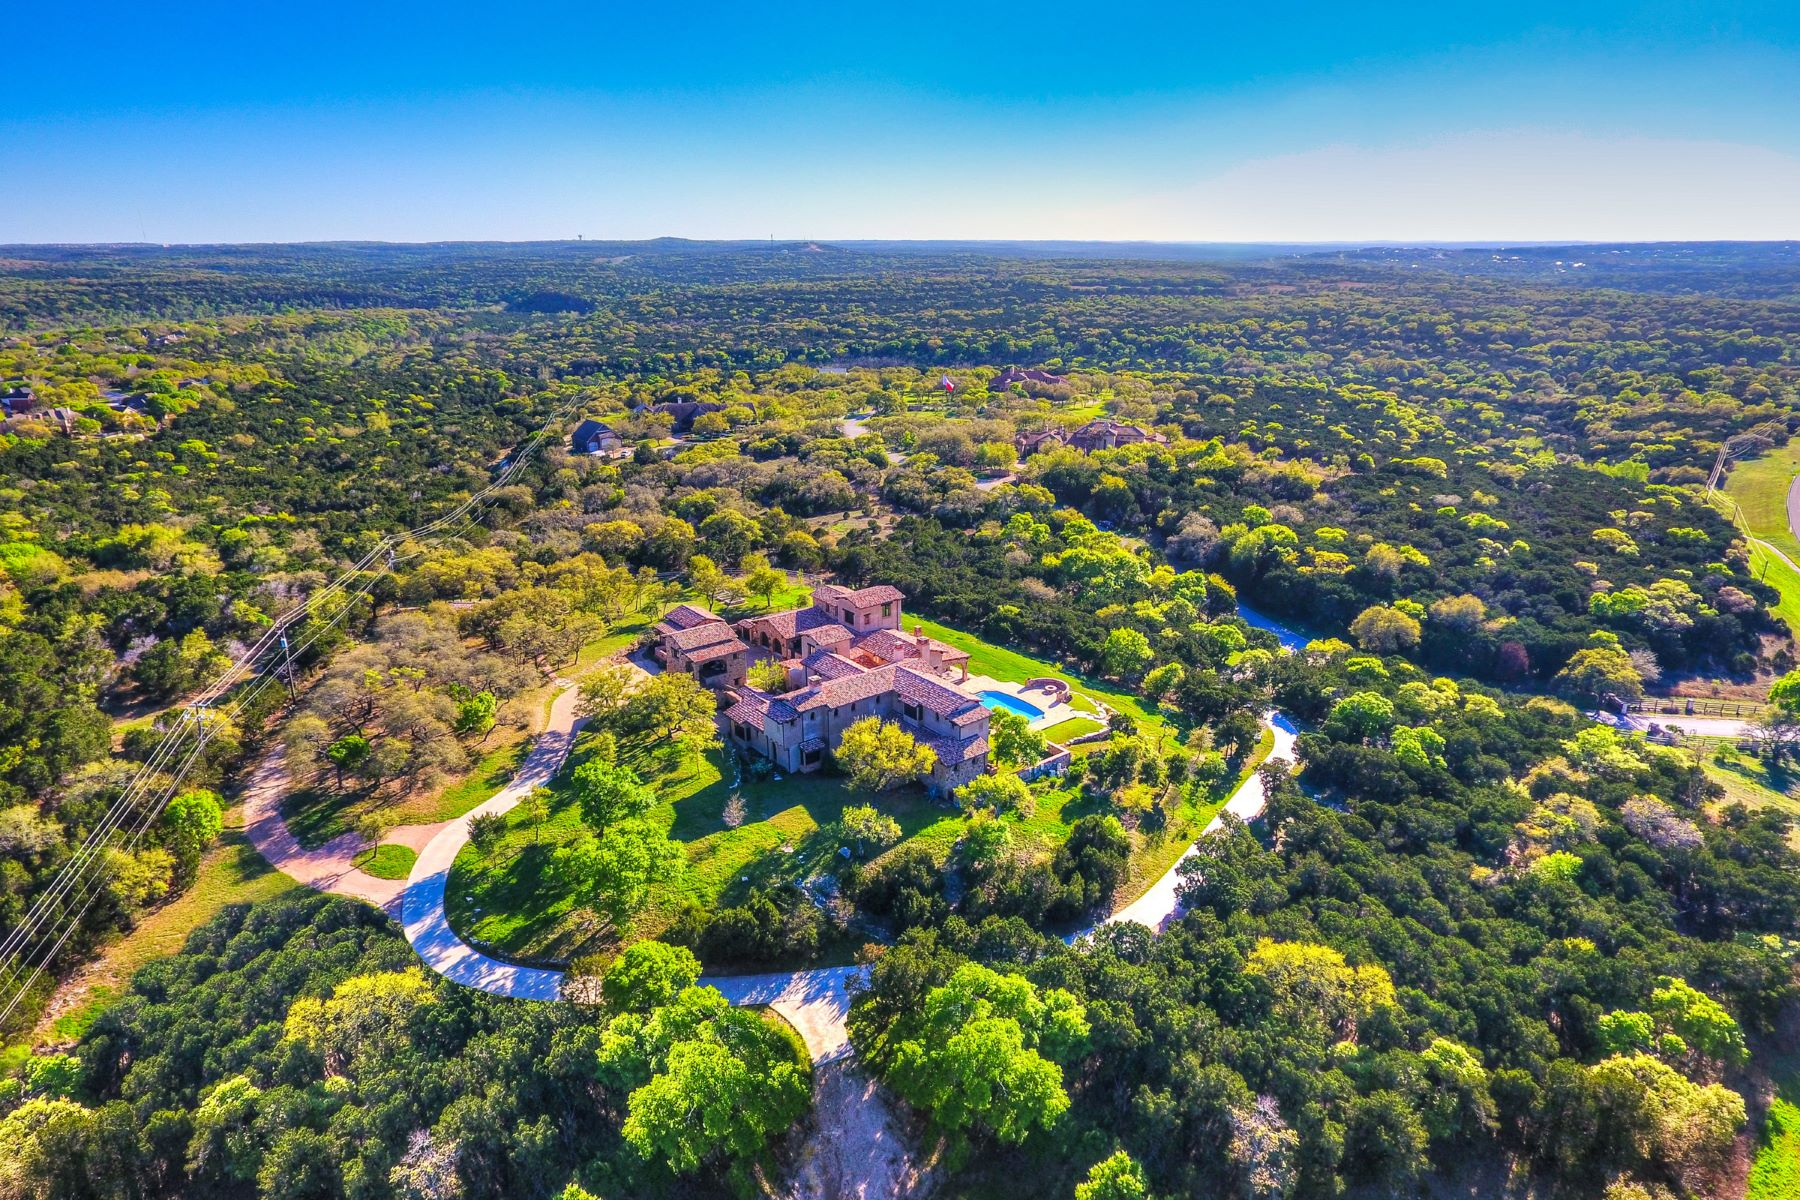 Maison unifamiliale pour l Vente à Stunning Hacienda on 8.7 Acres 2401 Dominion Hill, Austin, Texas, 78733 États-Unis